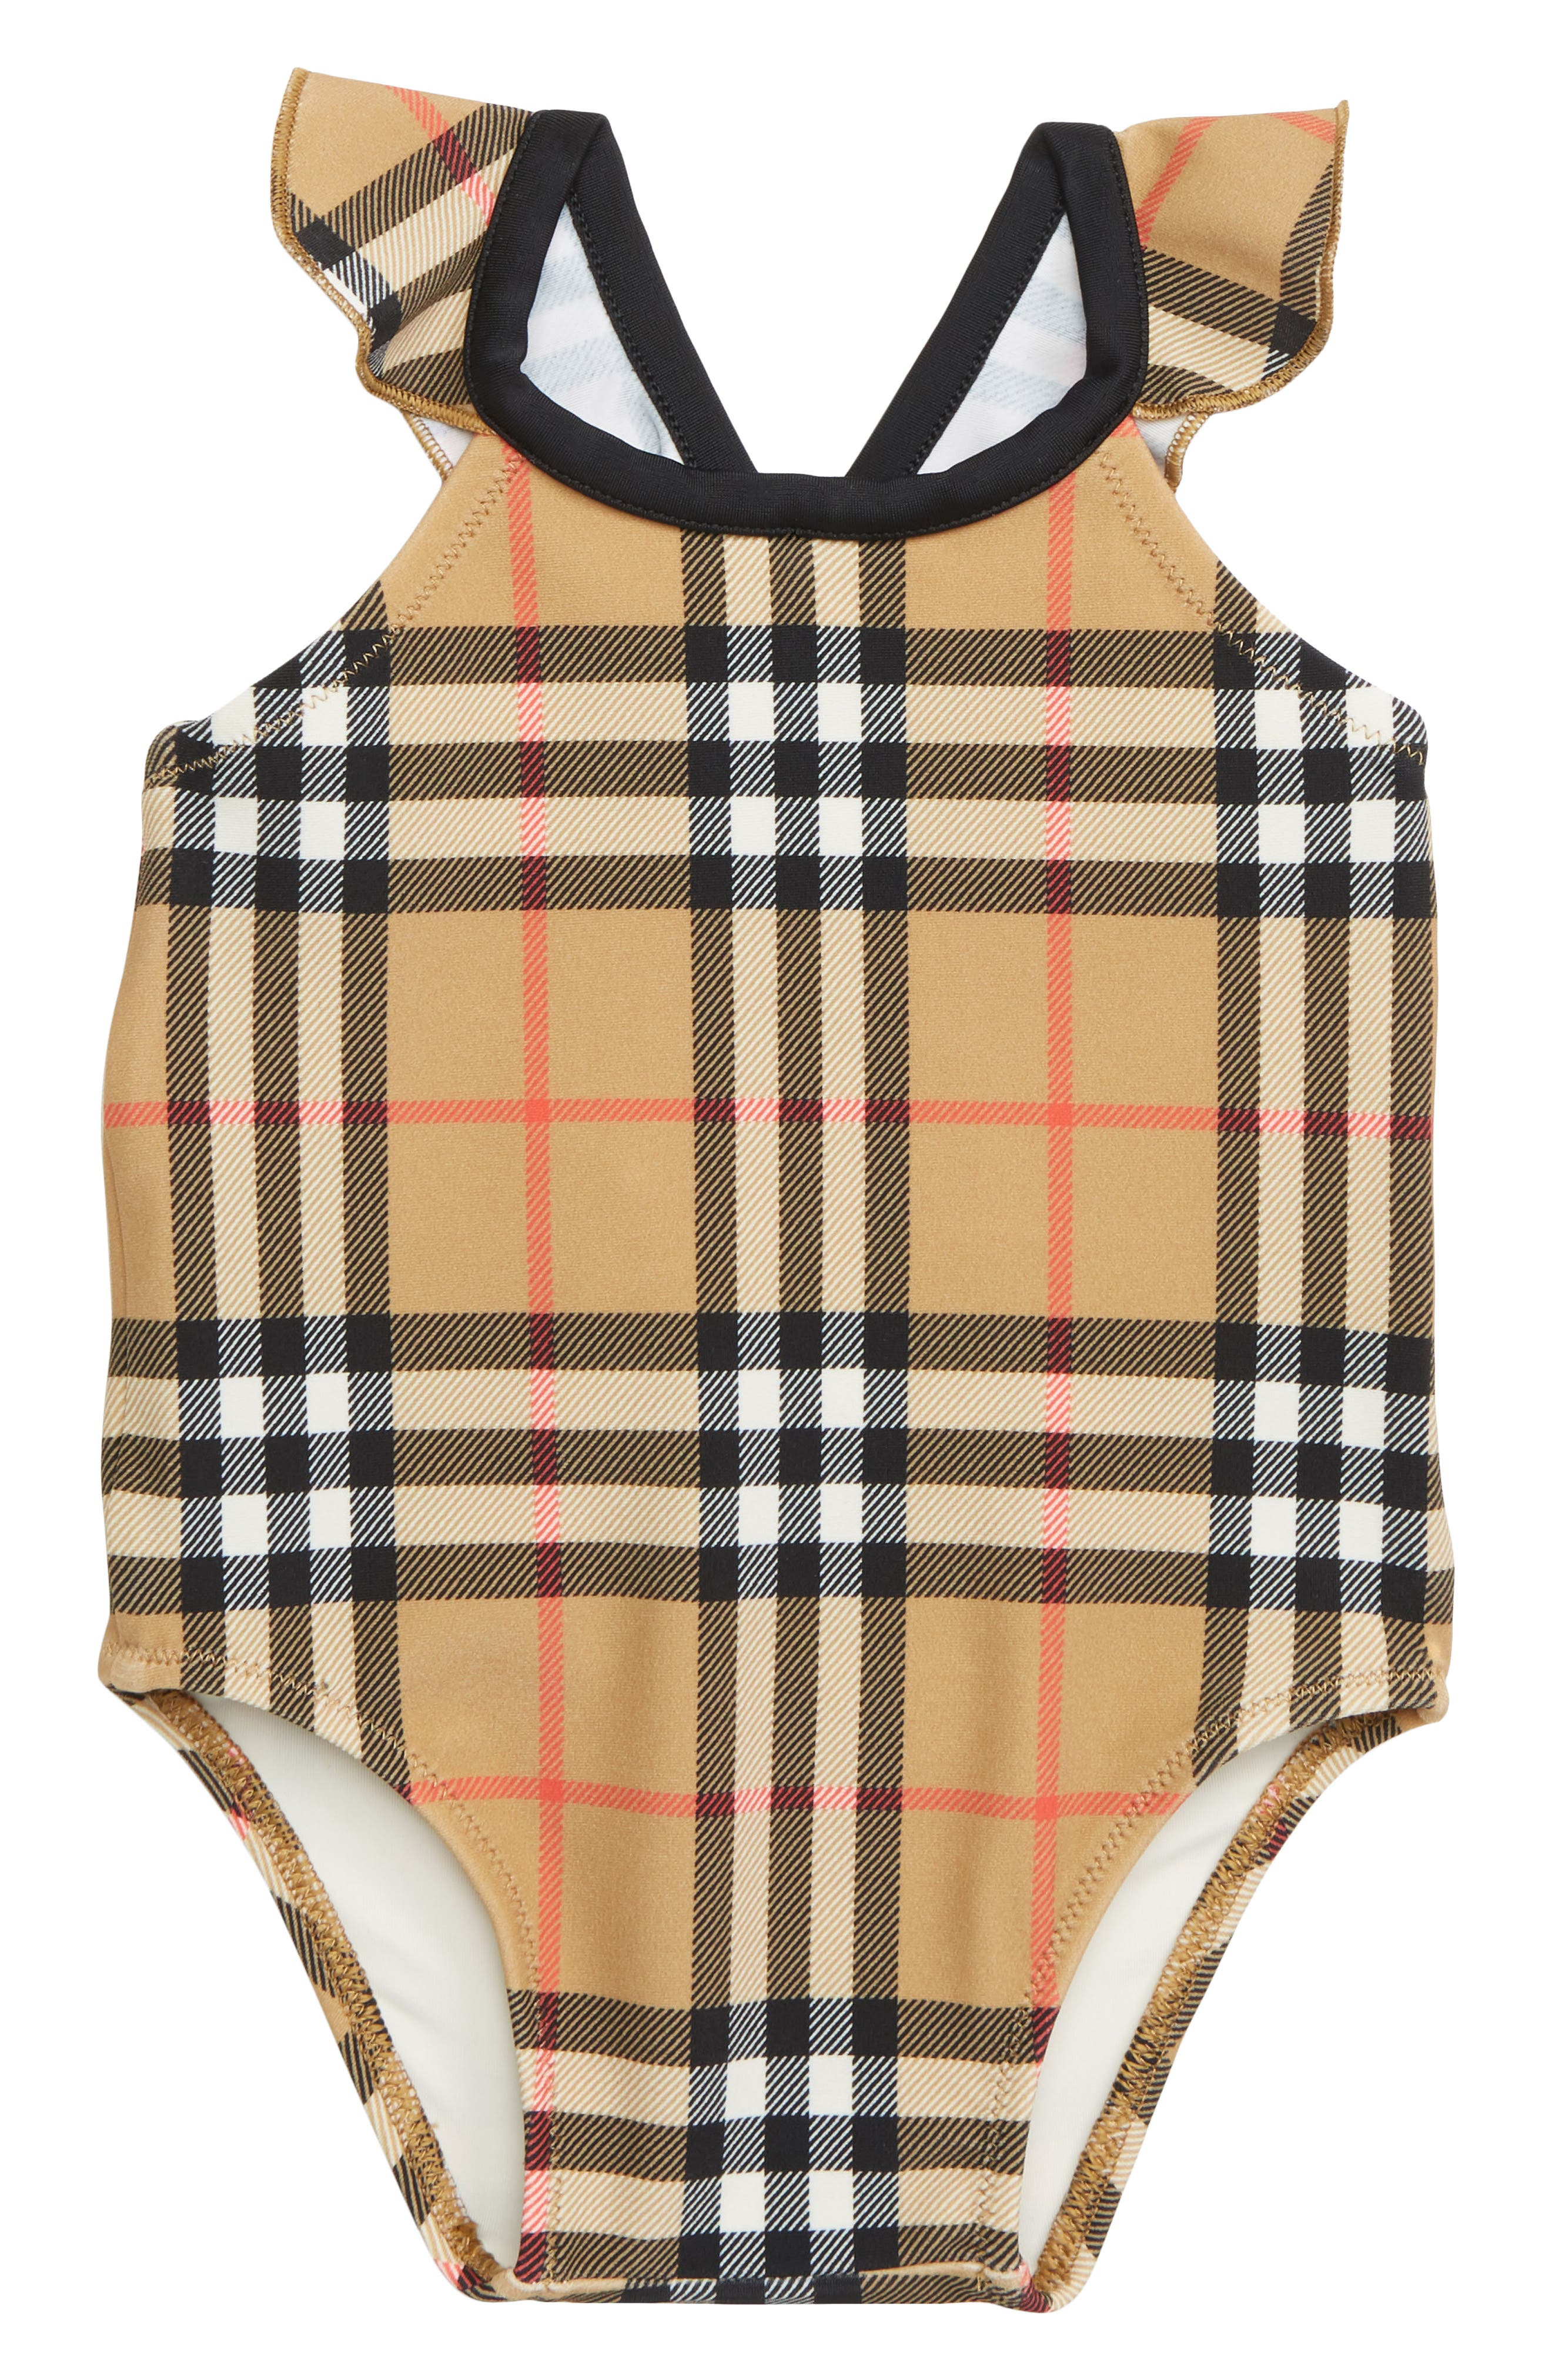 BURBERRY, Crina One-Piece Swimsuit, Main thumbnail 1, color, ANTIQUE YELLOW CHK